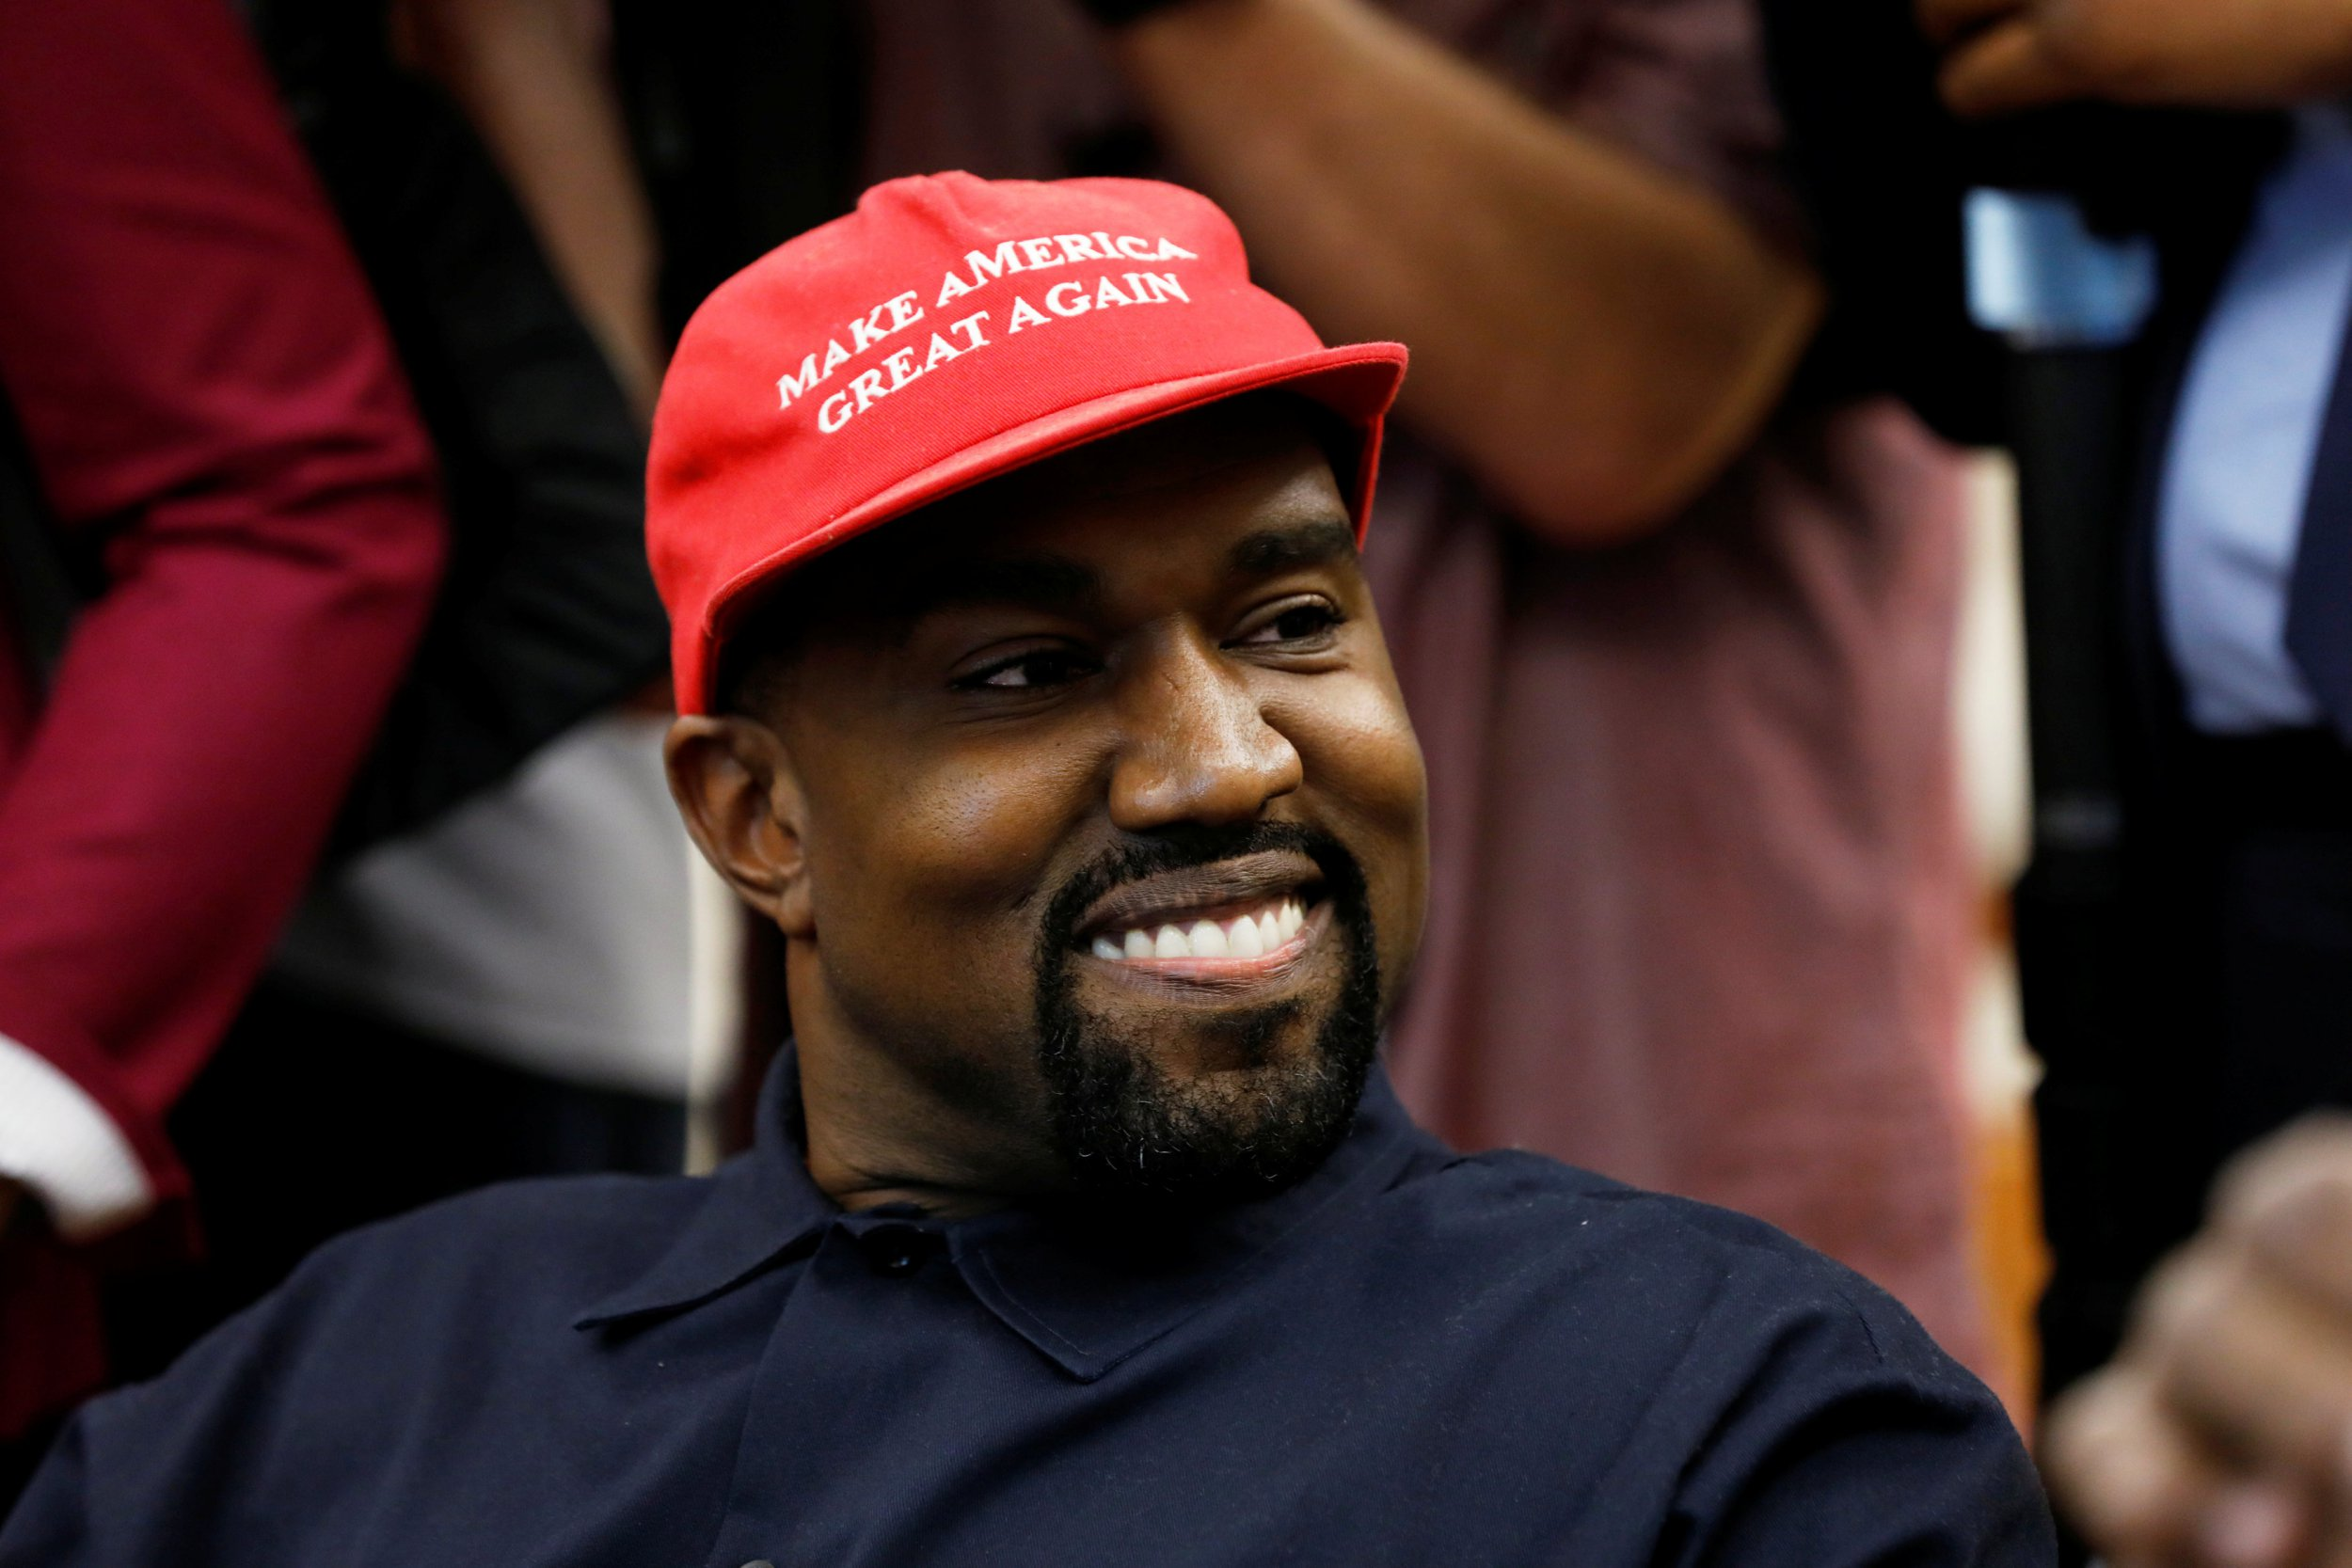 Kanye West wants a Rock and Roll Grammy and he just might get one